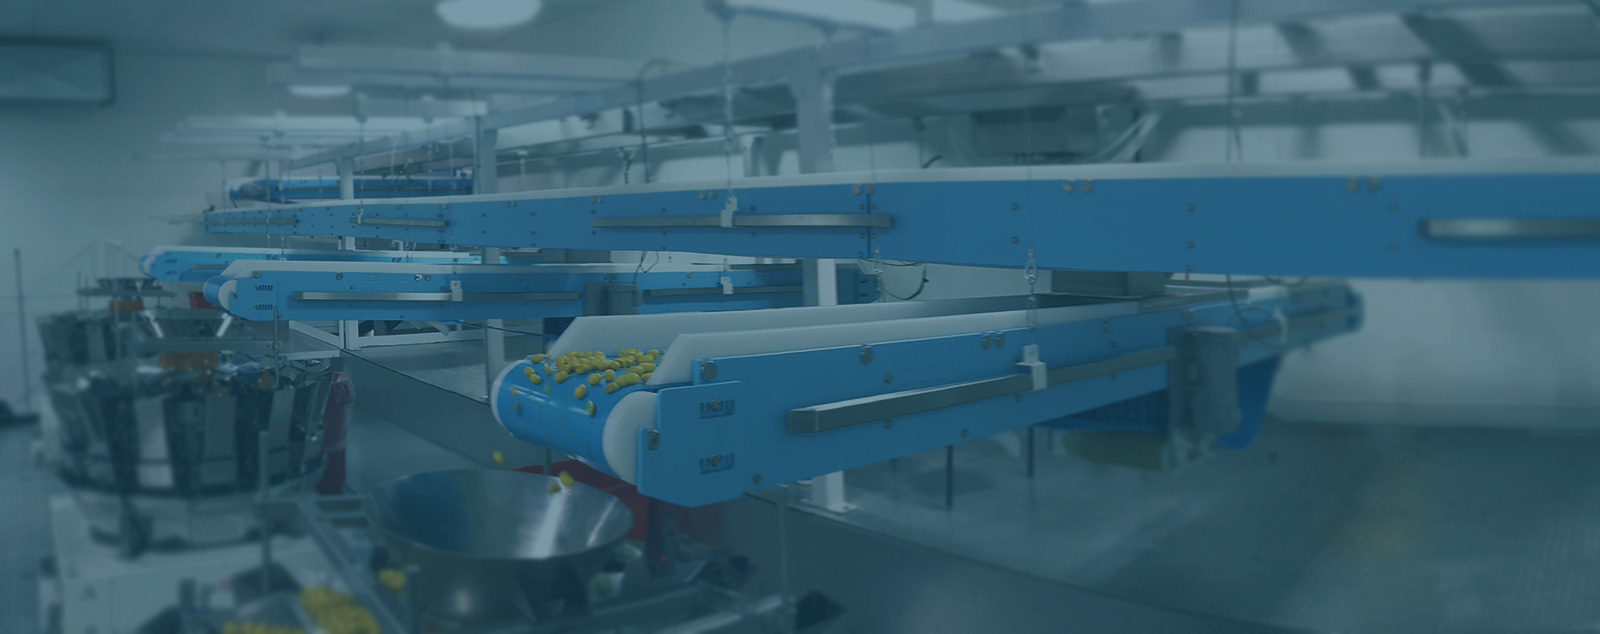 DynaClean food conveyor systems.